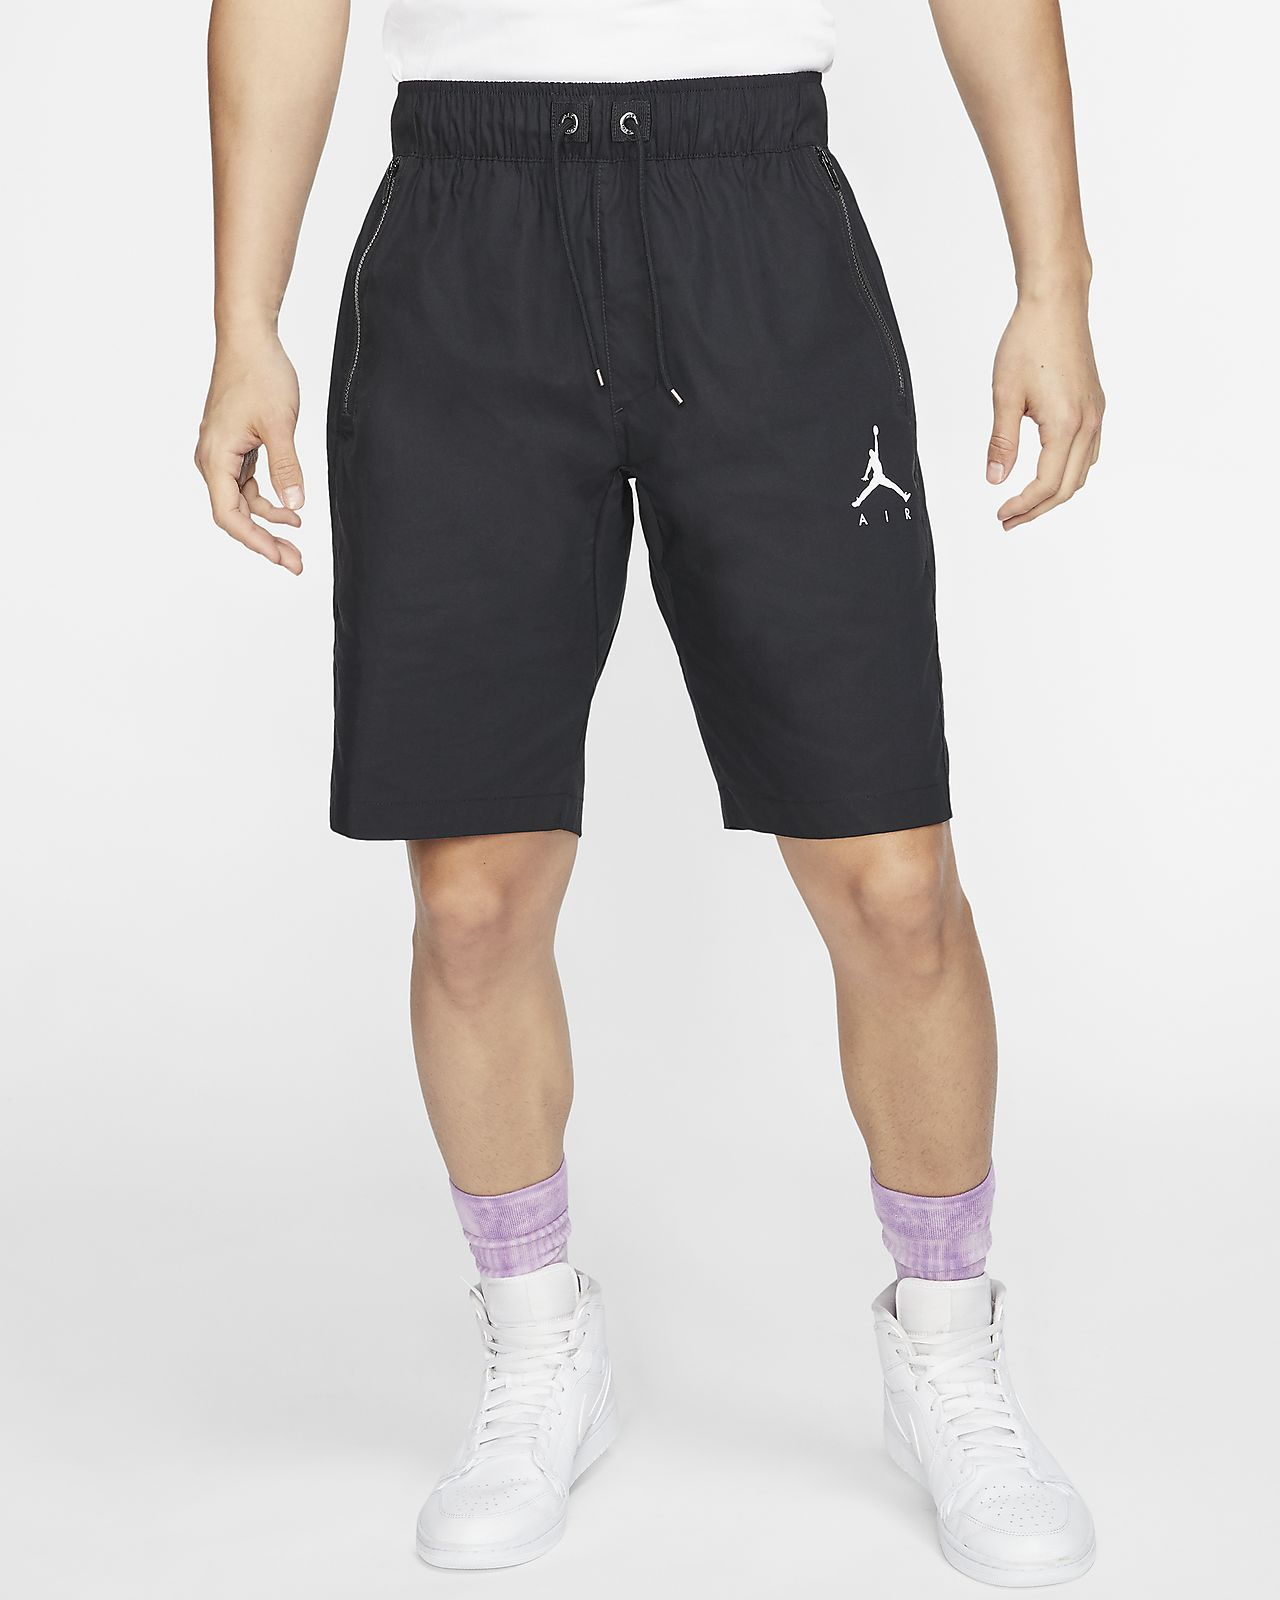 Jordan Jumpman Men's Woven Shorts